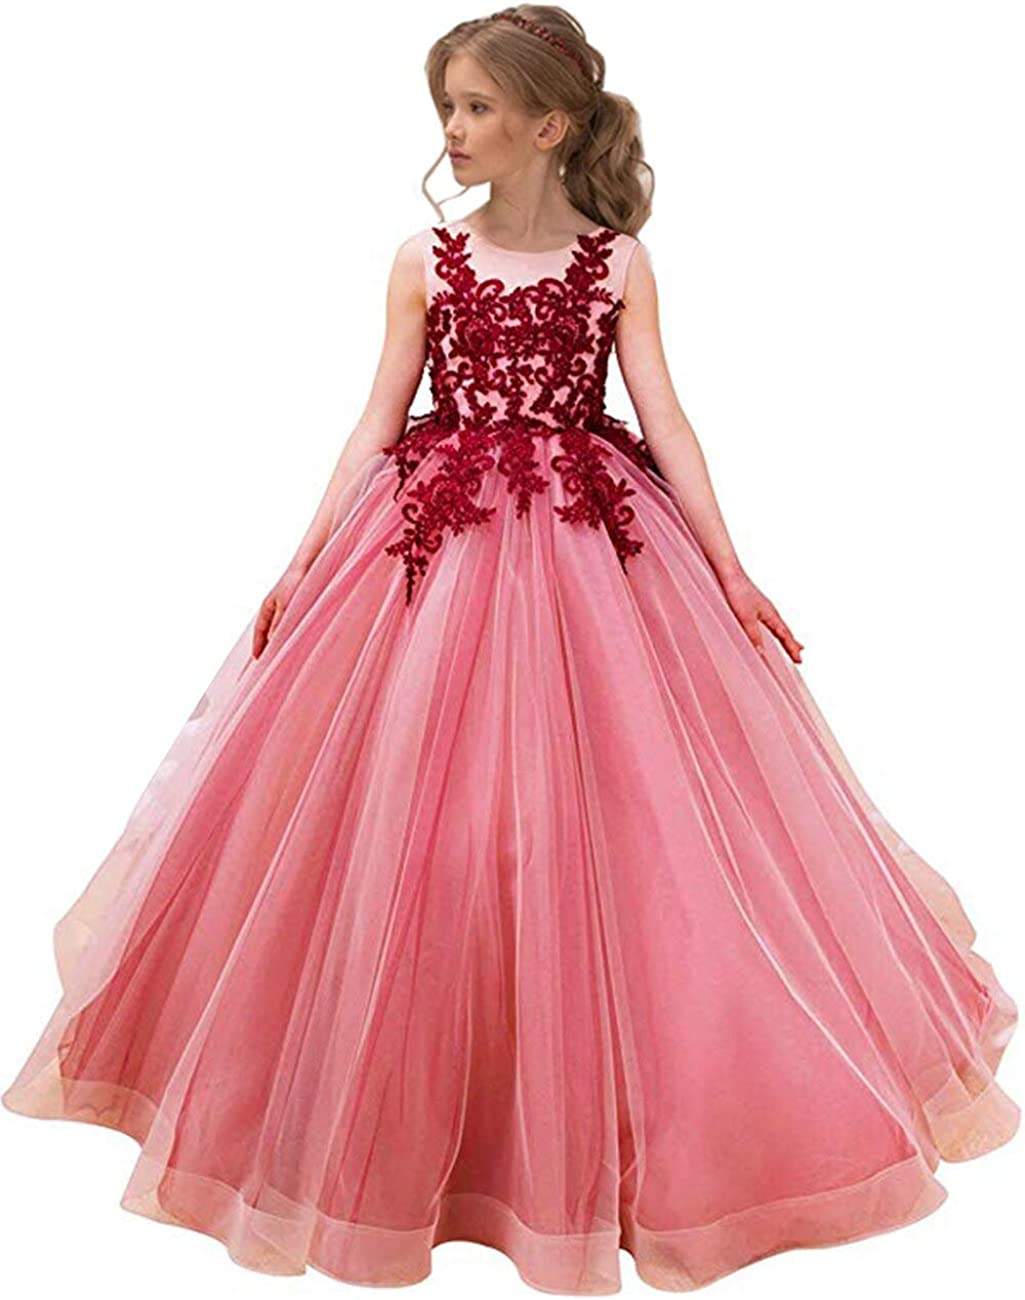 MuchXi Vintage Floral Lace Flower Girl Dresses Sleeveless Princess Pageant Baptism Prom Ball Gown